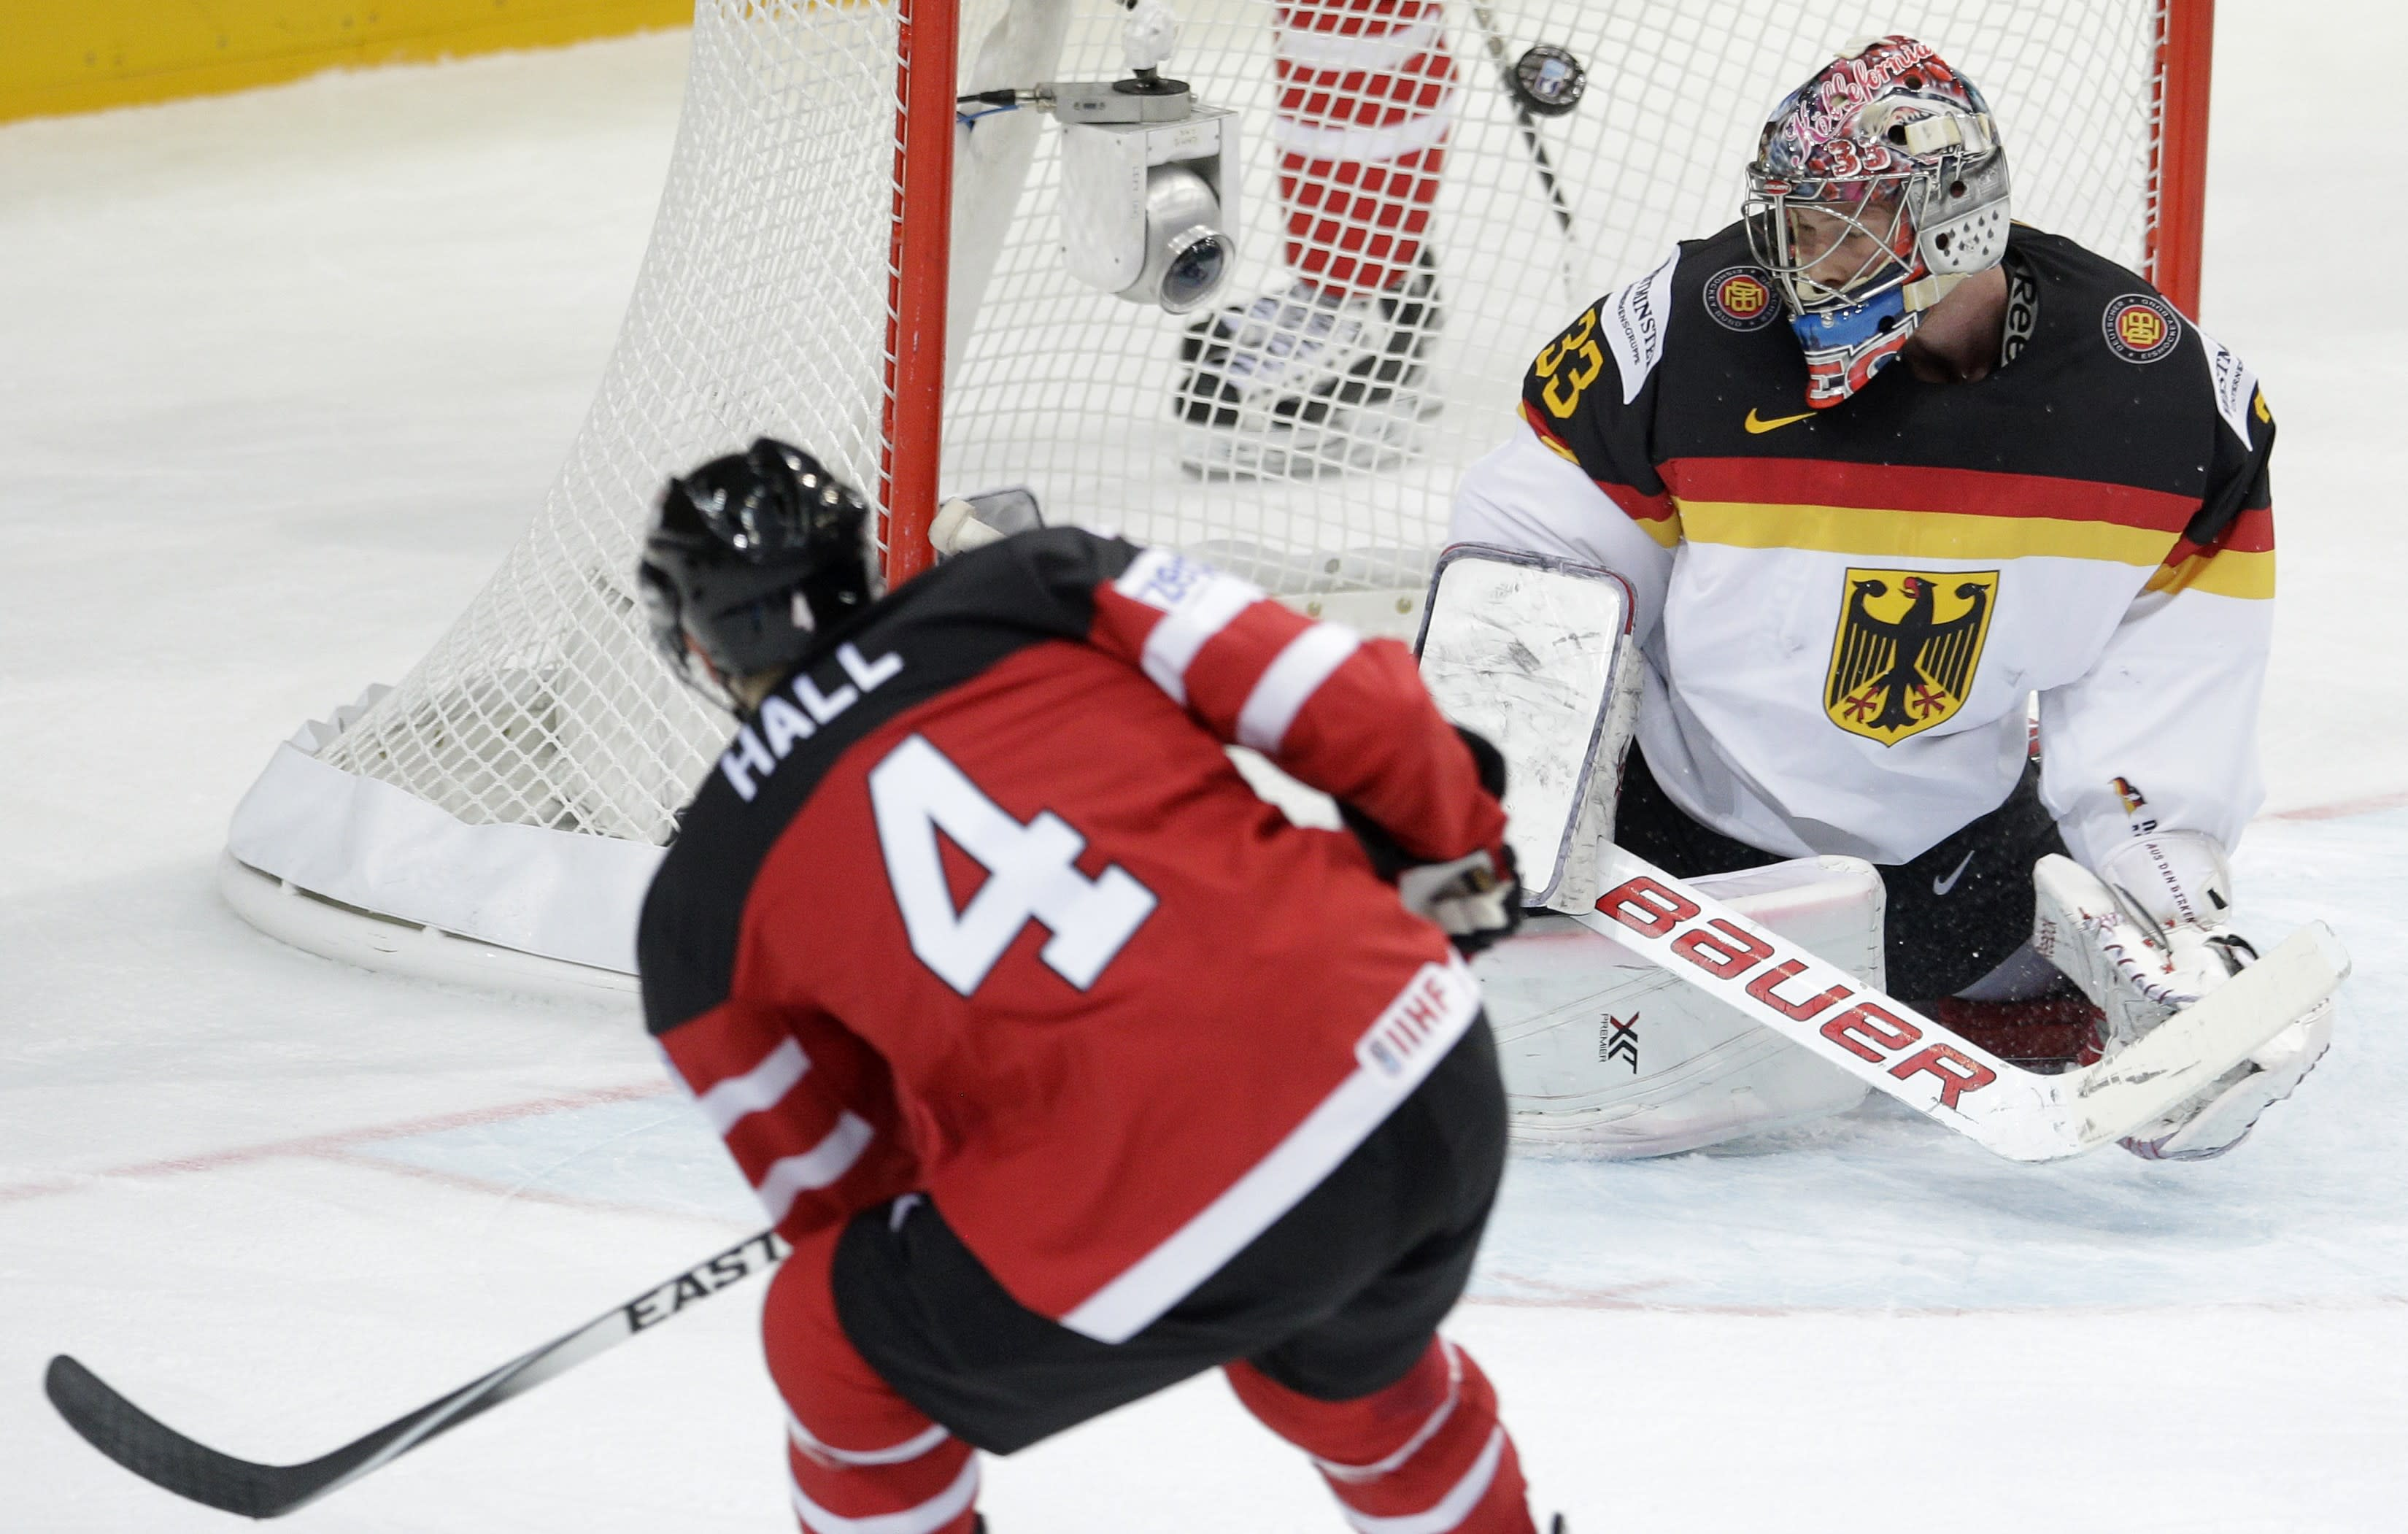 Canada beats Germany 10-0 at ice hockey worlds